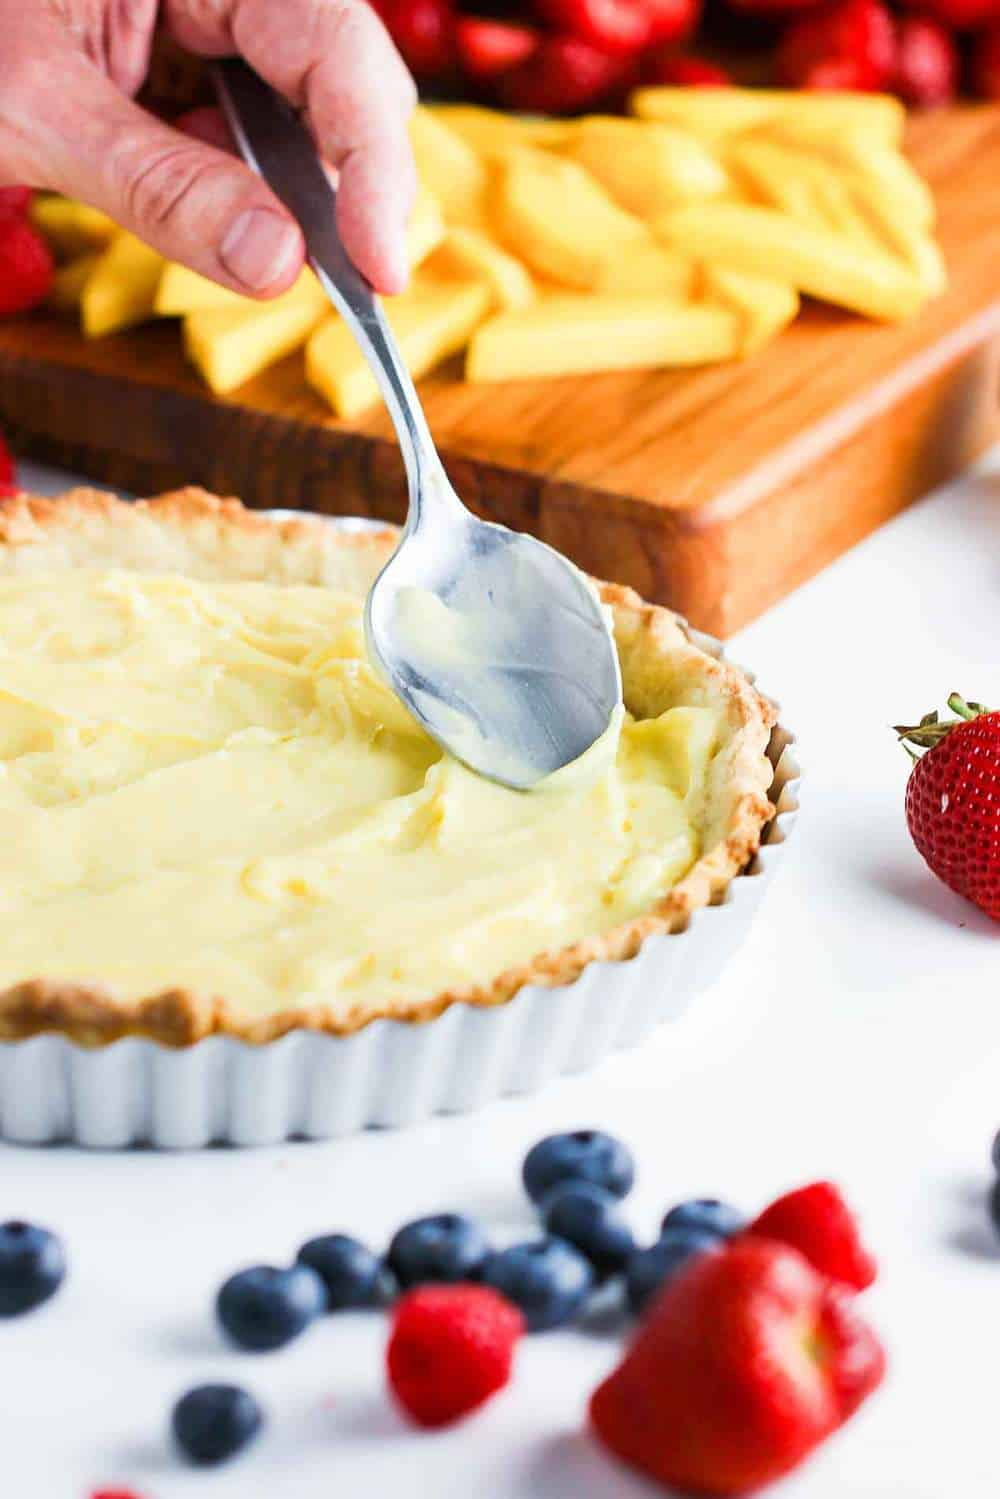 filling the fruit tart shel with pastry cream